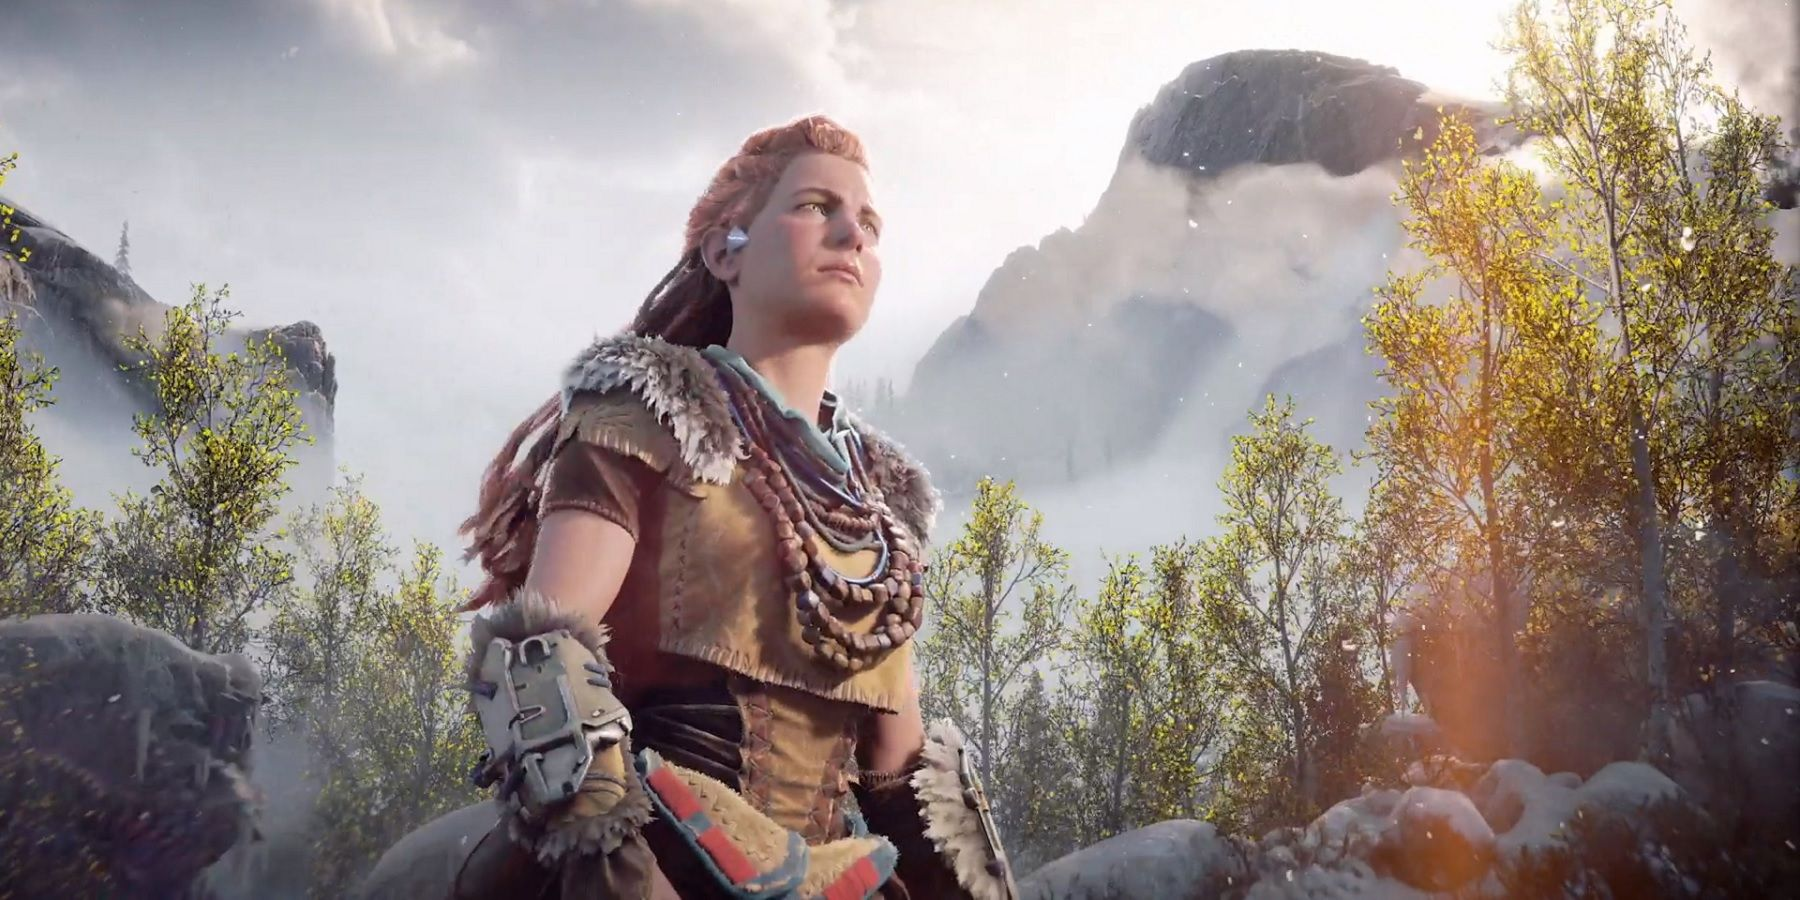 Gamescom ONL 2021 Showcases a Great Trend for Female Protagonists